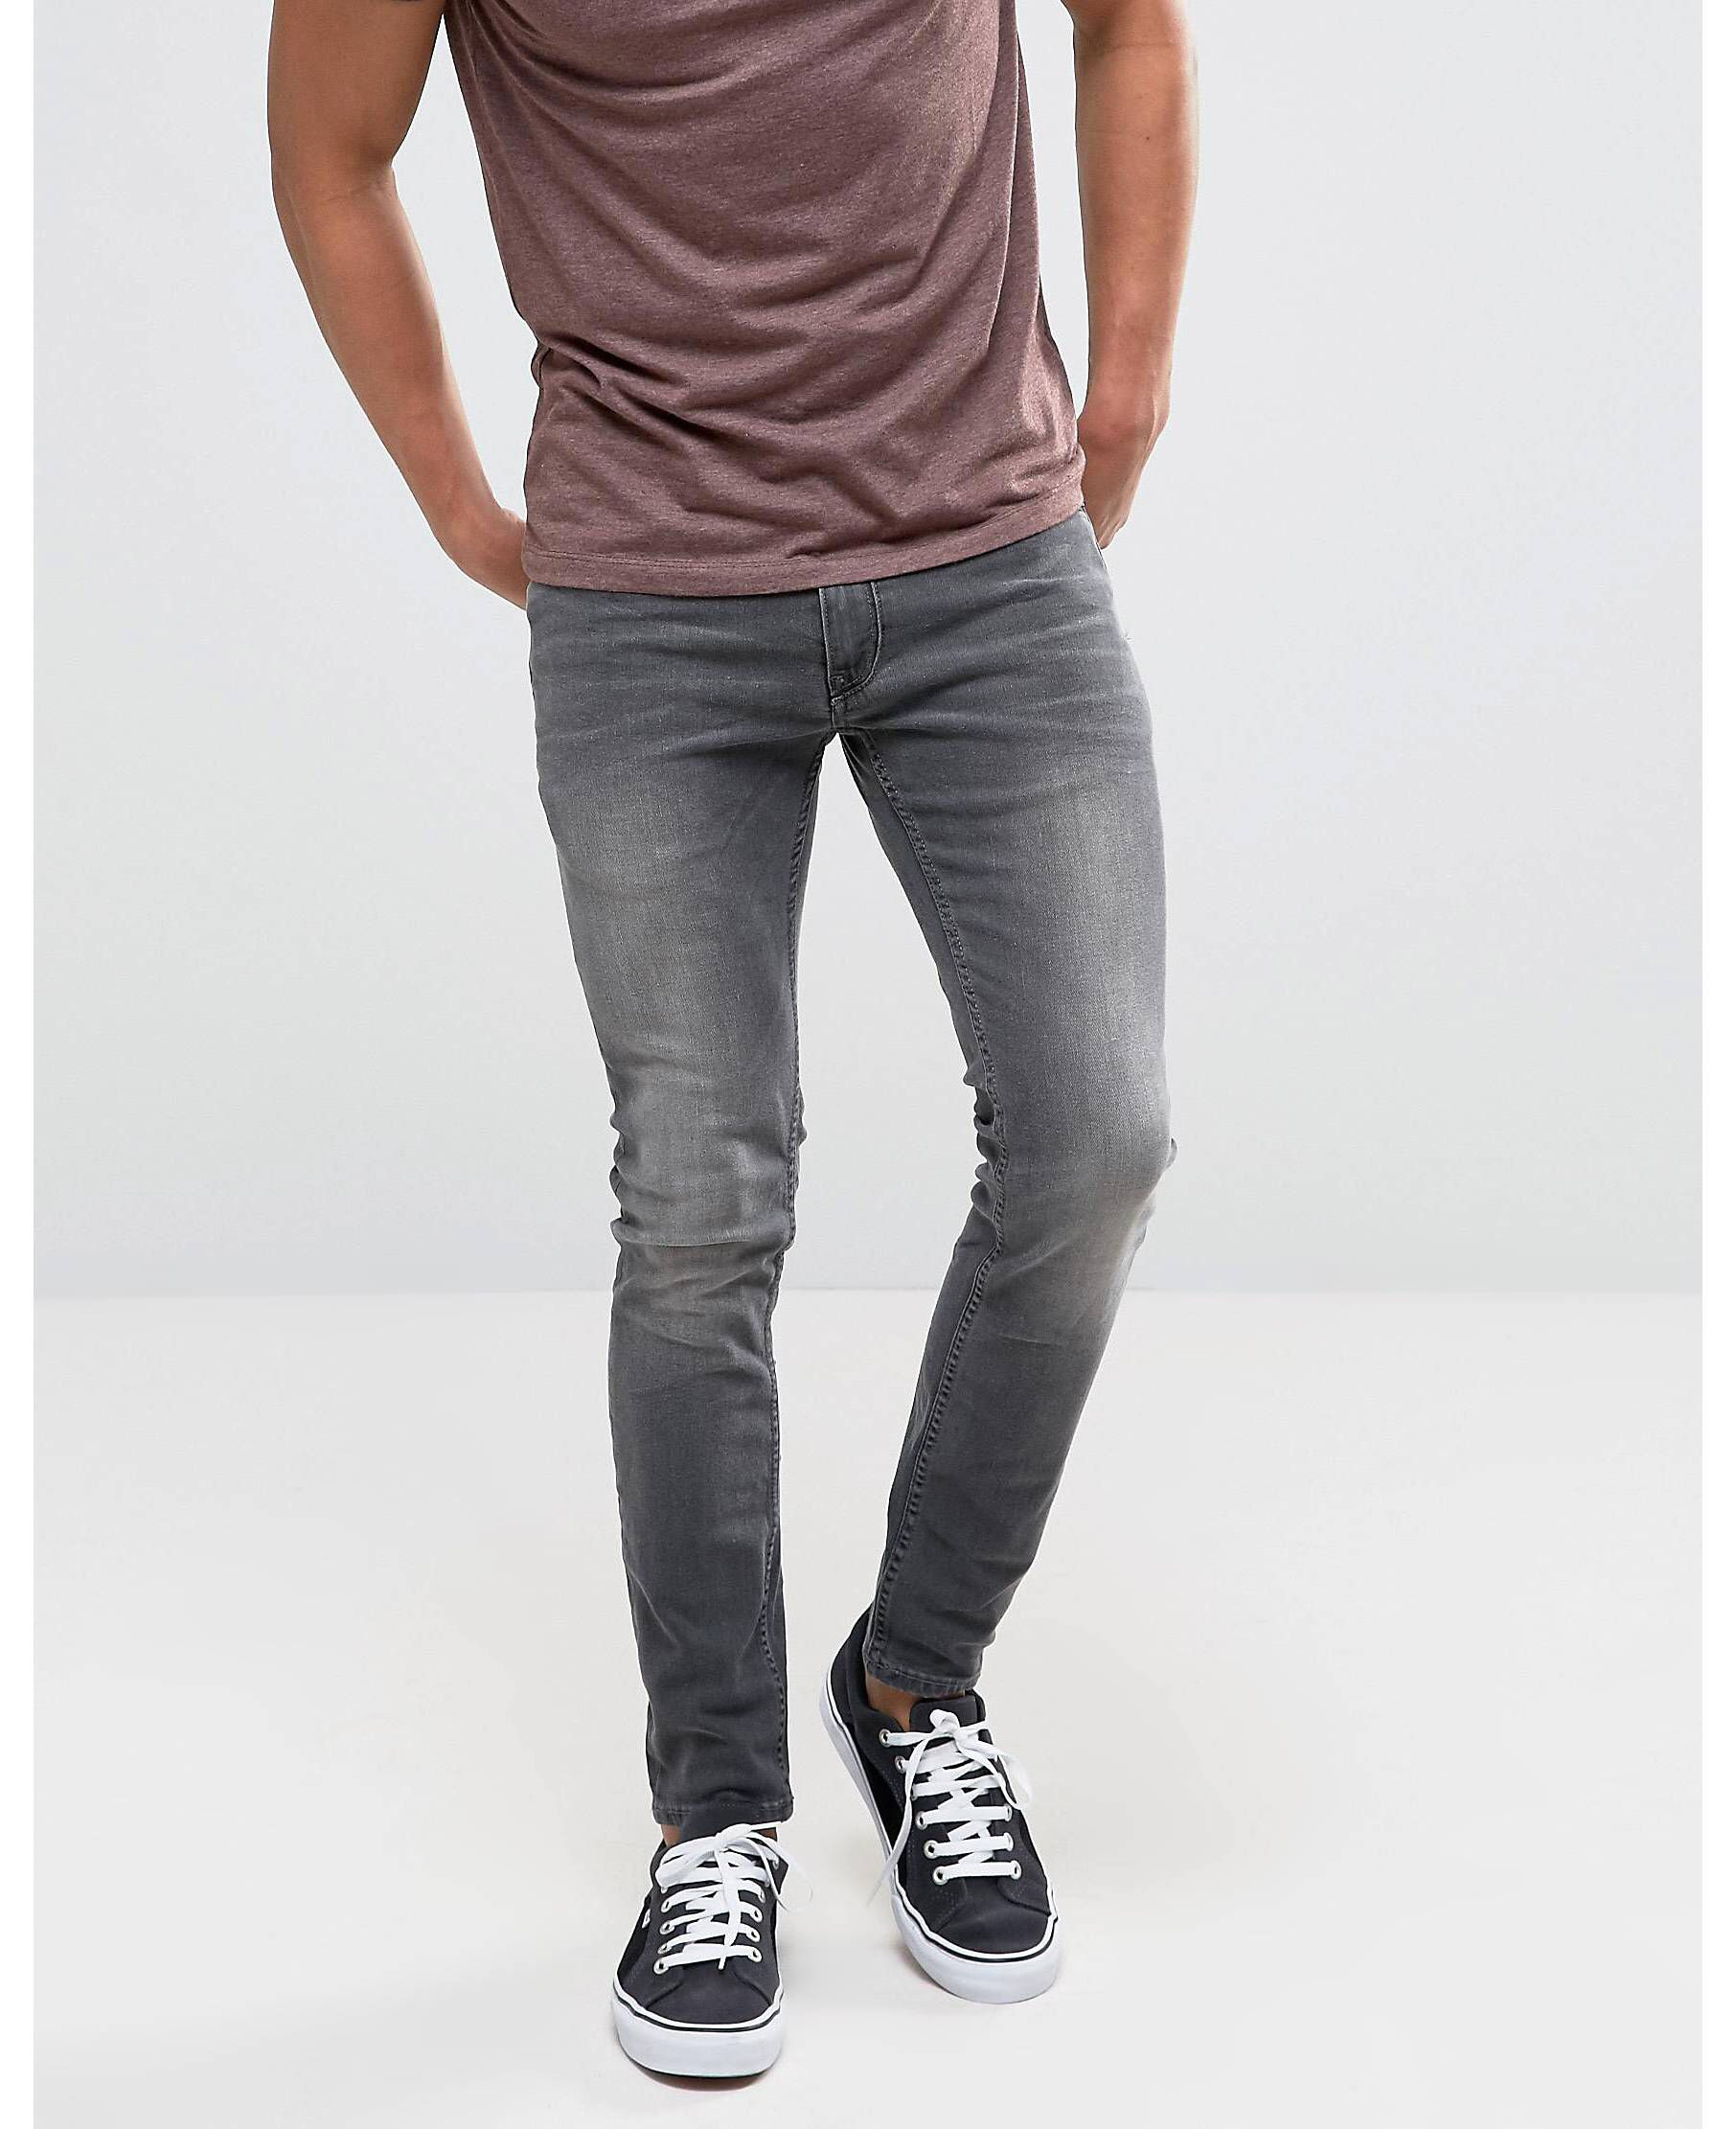 393b6c1dd824 Burton Menswear Superskinny Black Washed Jeans in 2019